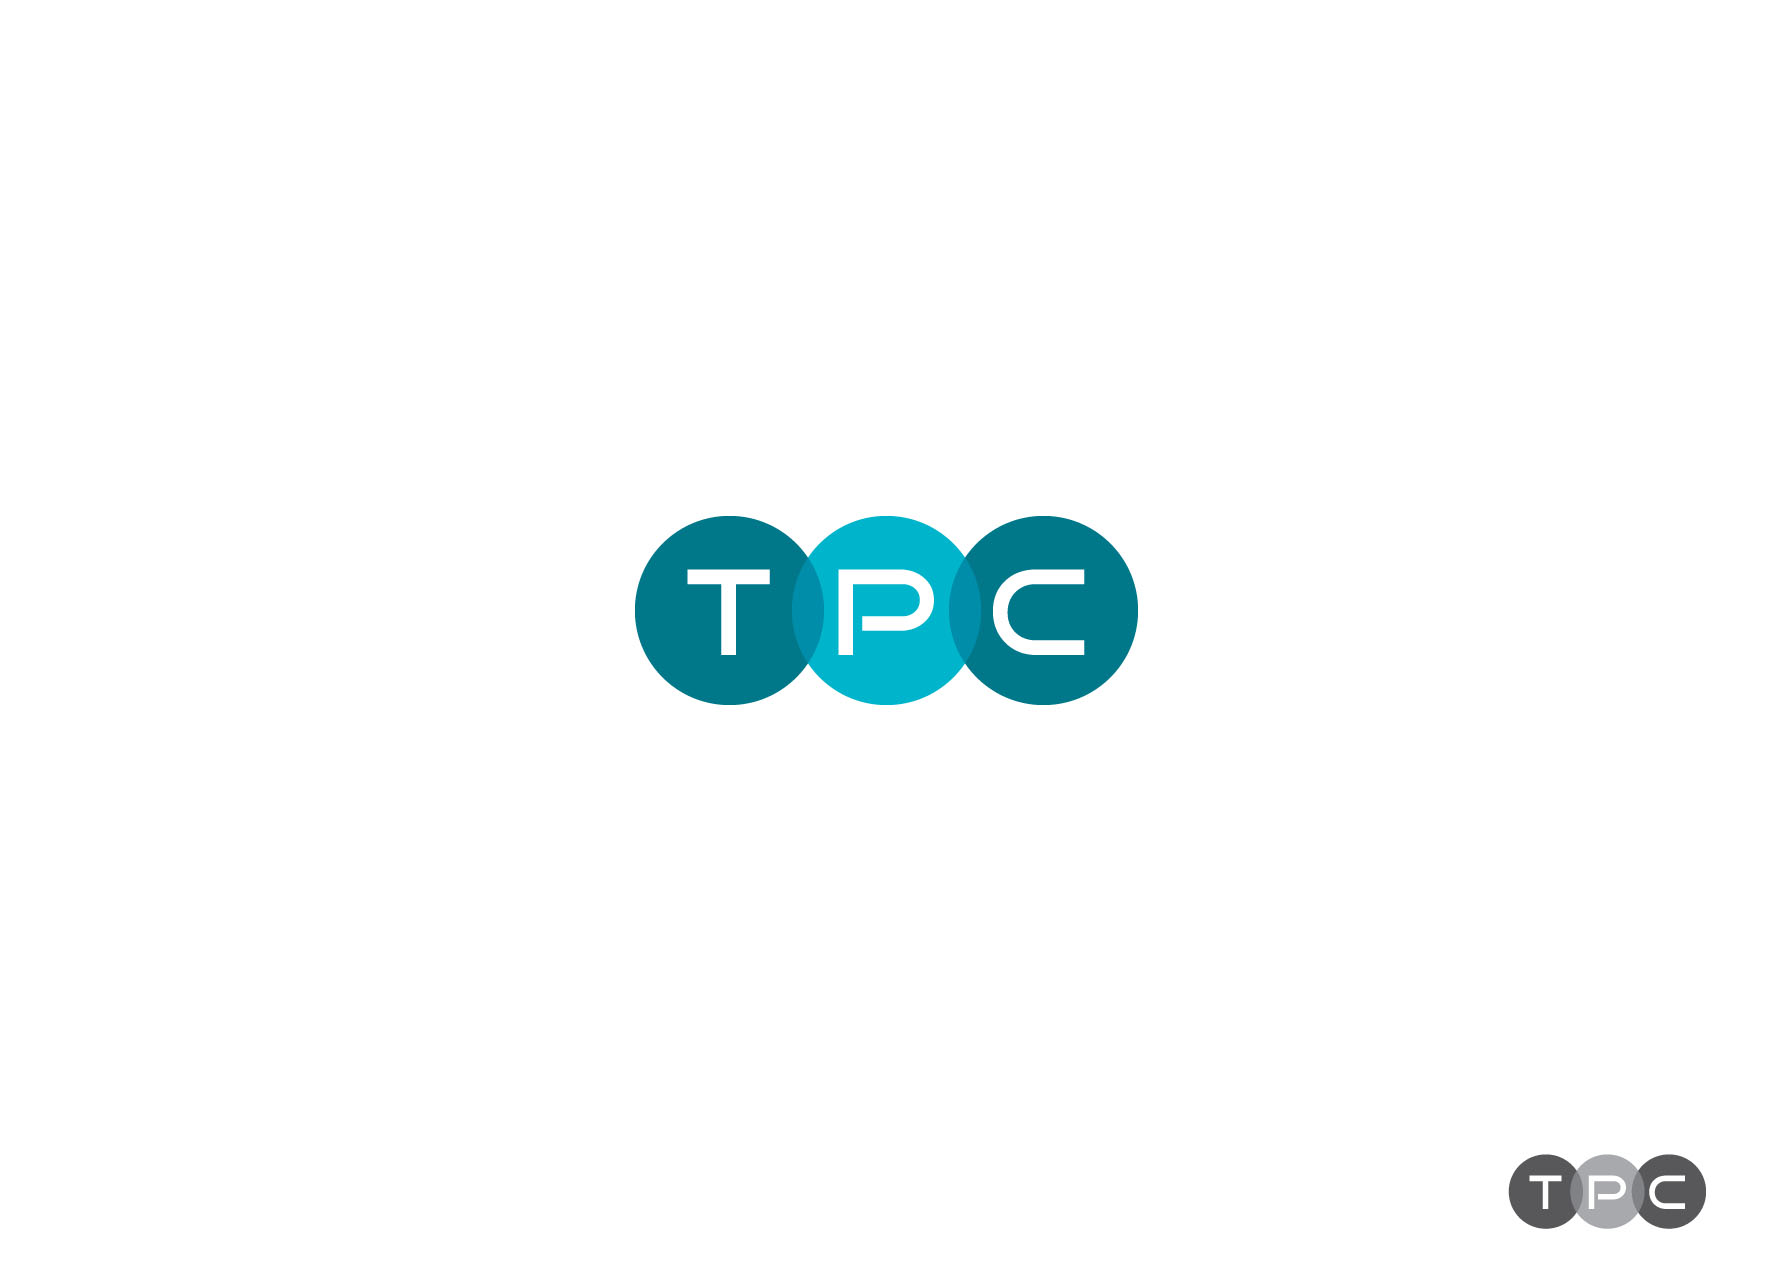 Logo Design by tanganpanas - Entry No. 237 in the Logo Design Contest Unique Logo Design Wanted for TPC.